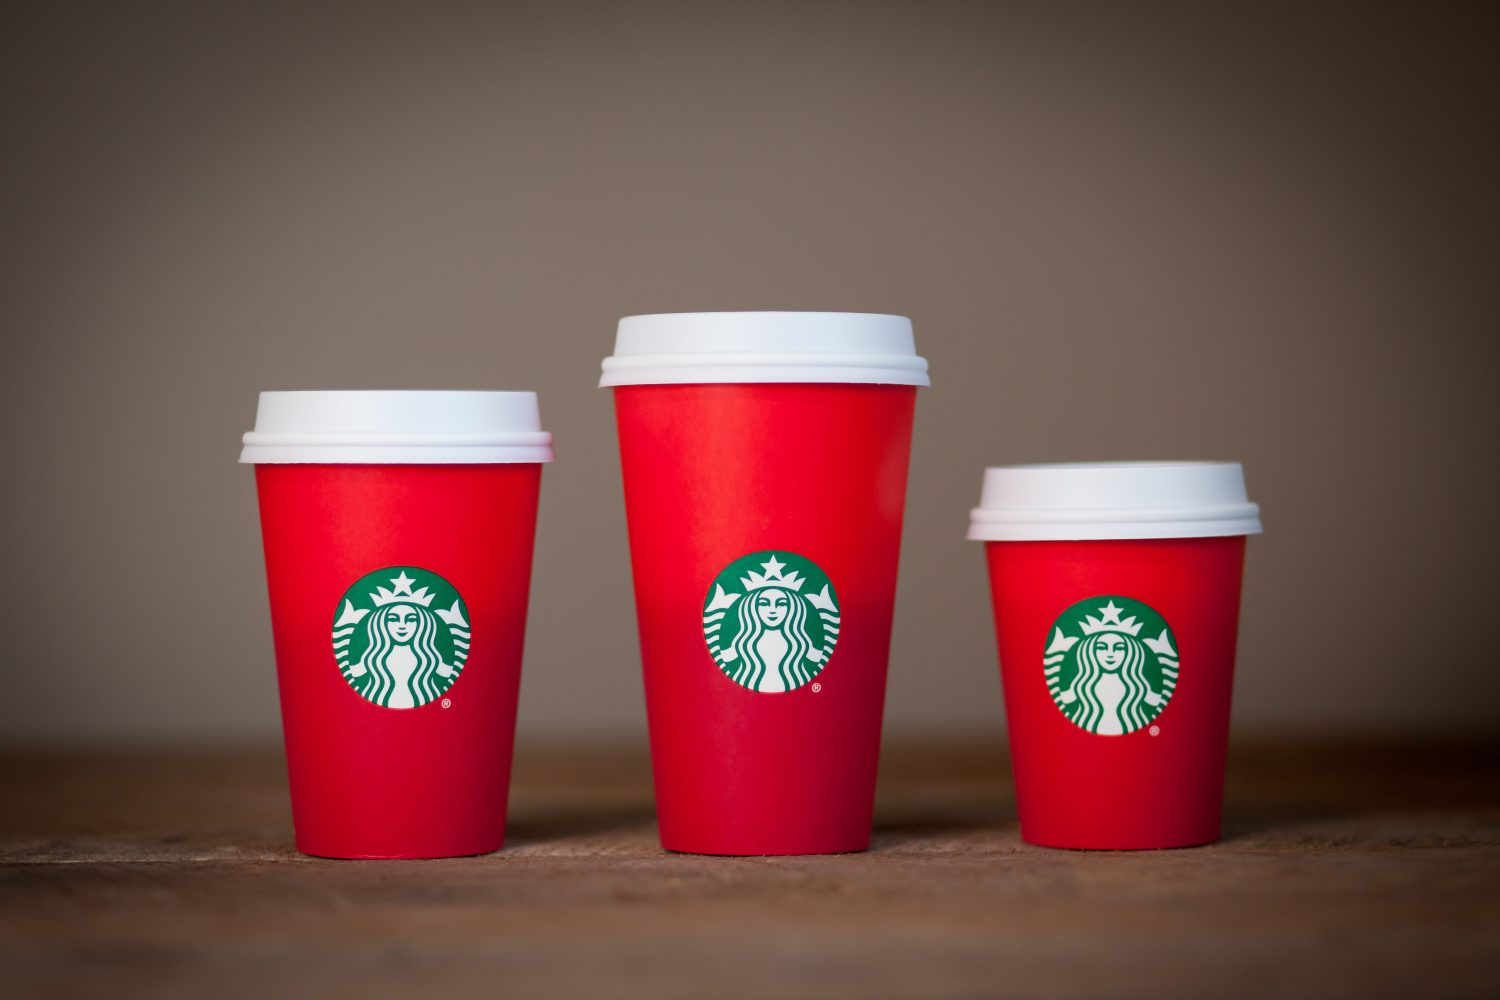 1st+Amendment+Controversy+Over+Plain+Red+Starbucks+Cups